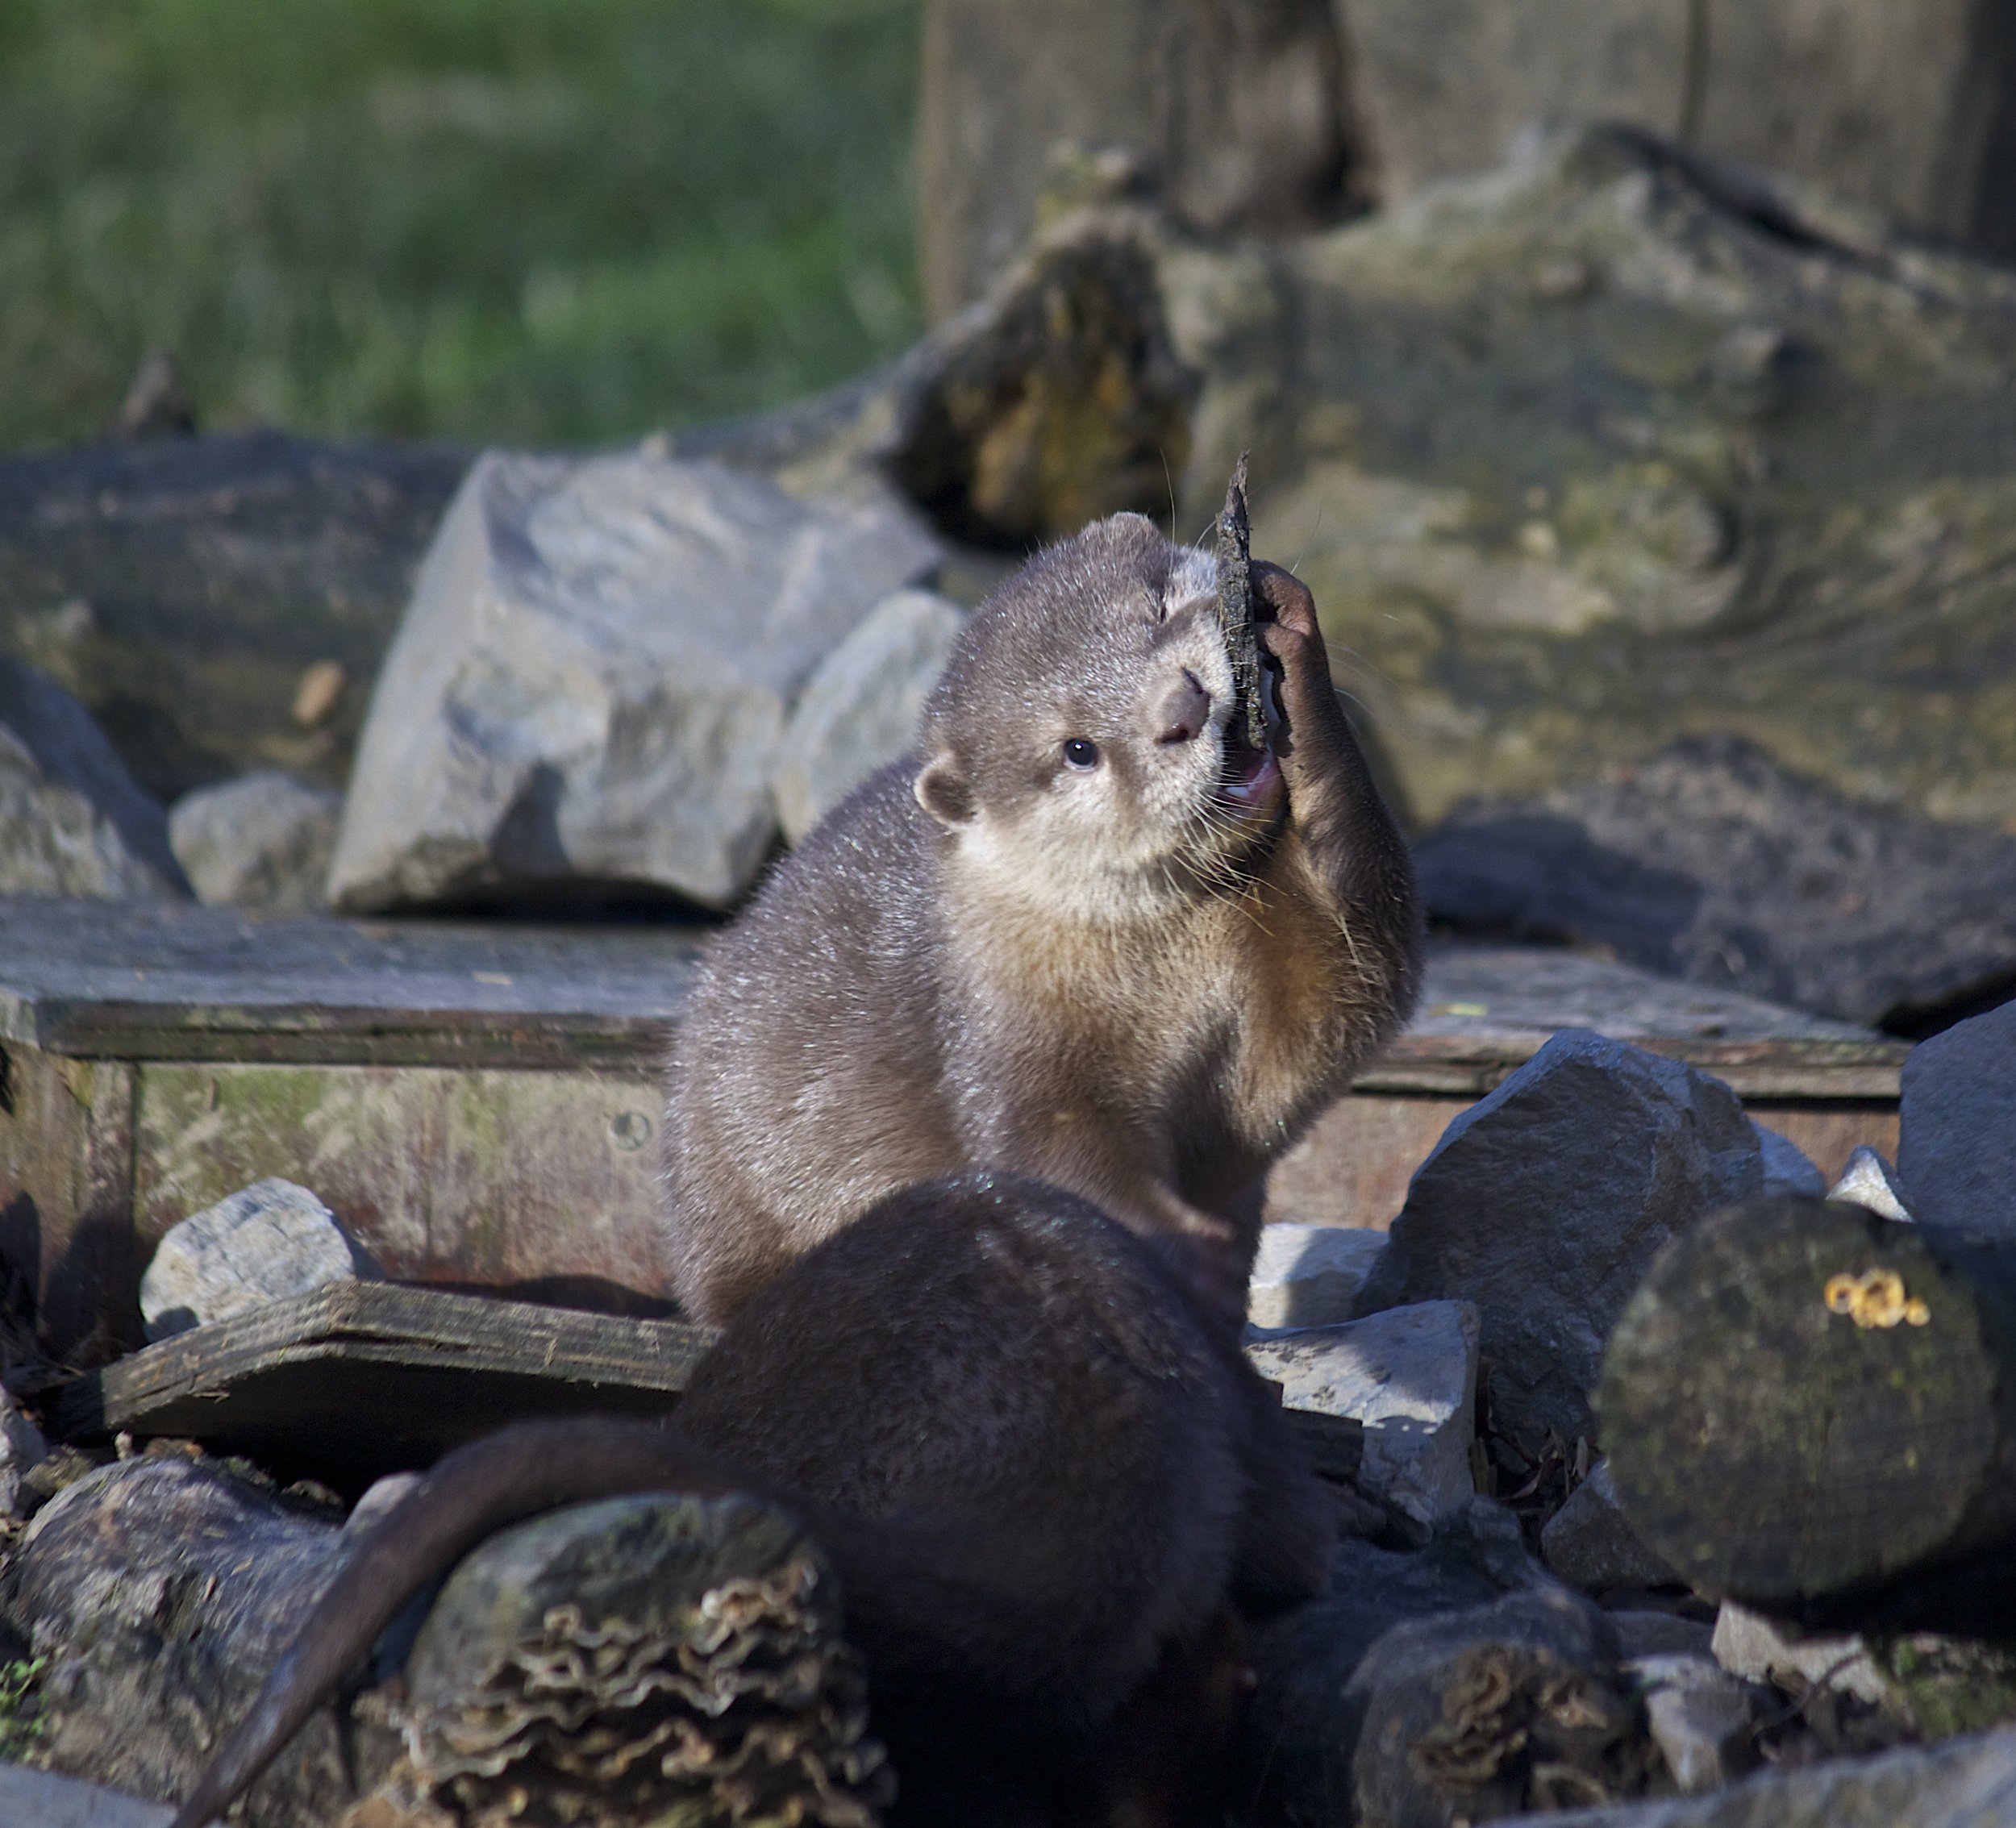 Little Otter, That's Not a Rock You're Trying to Eat, Is It?